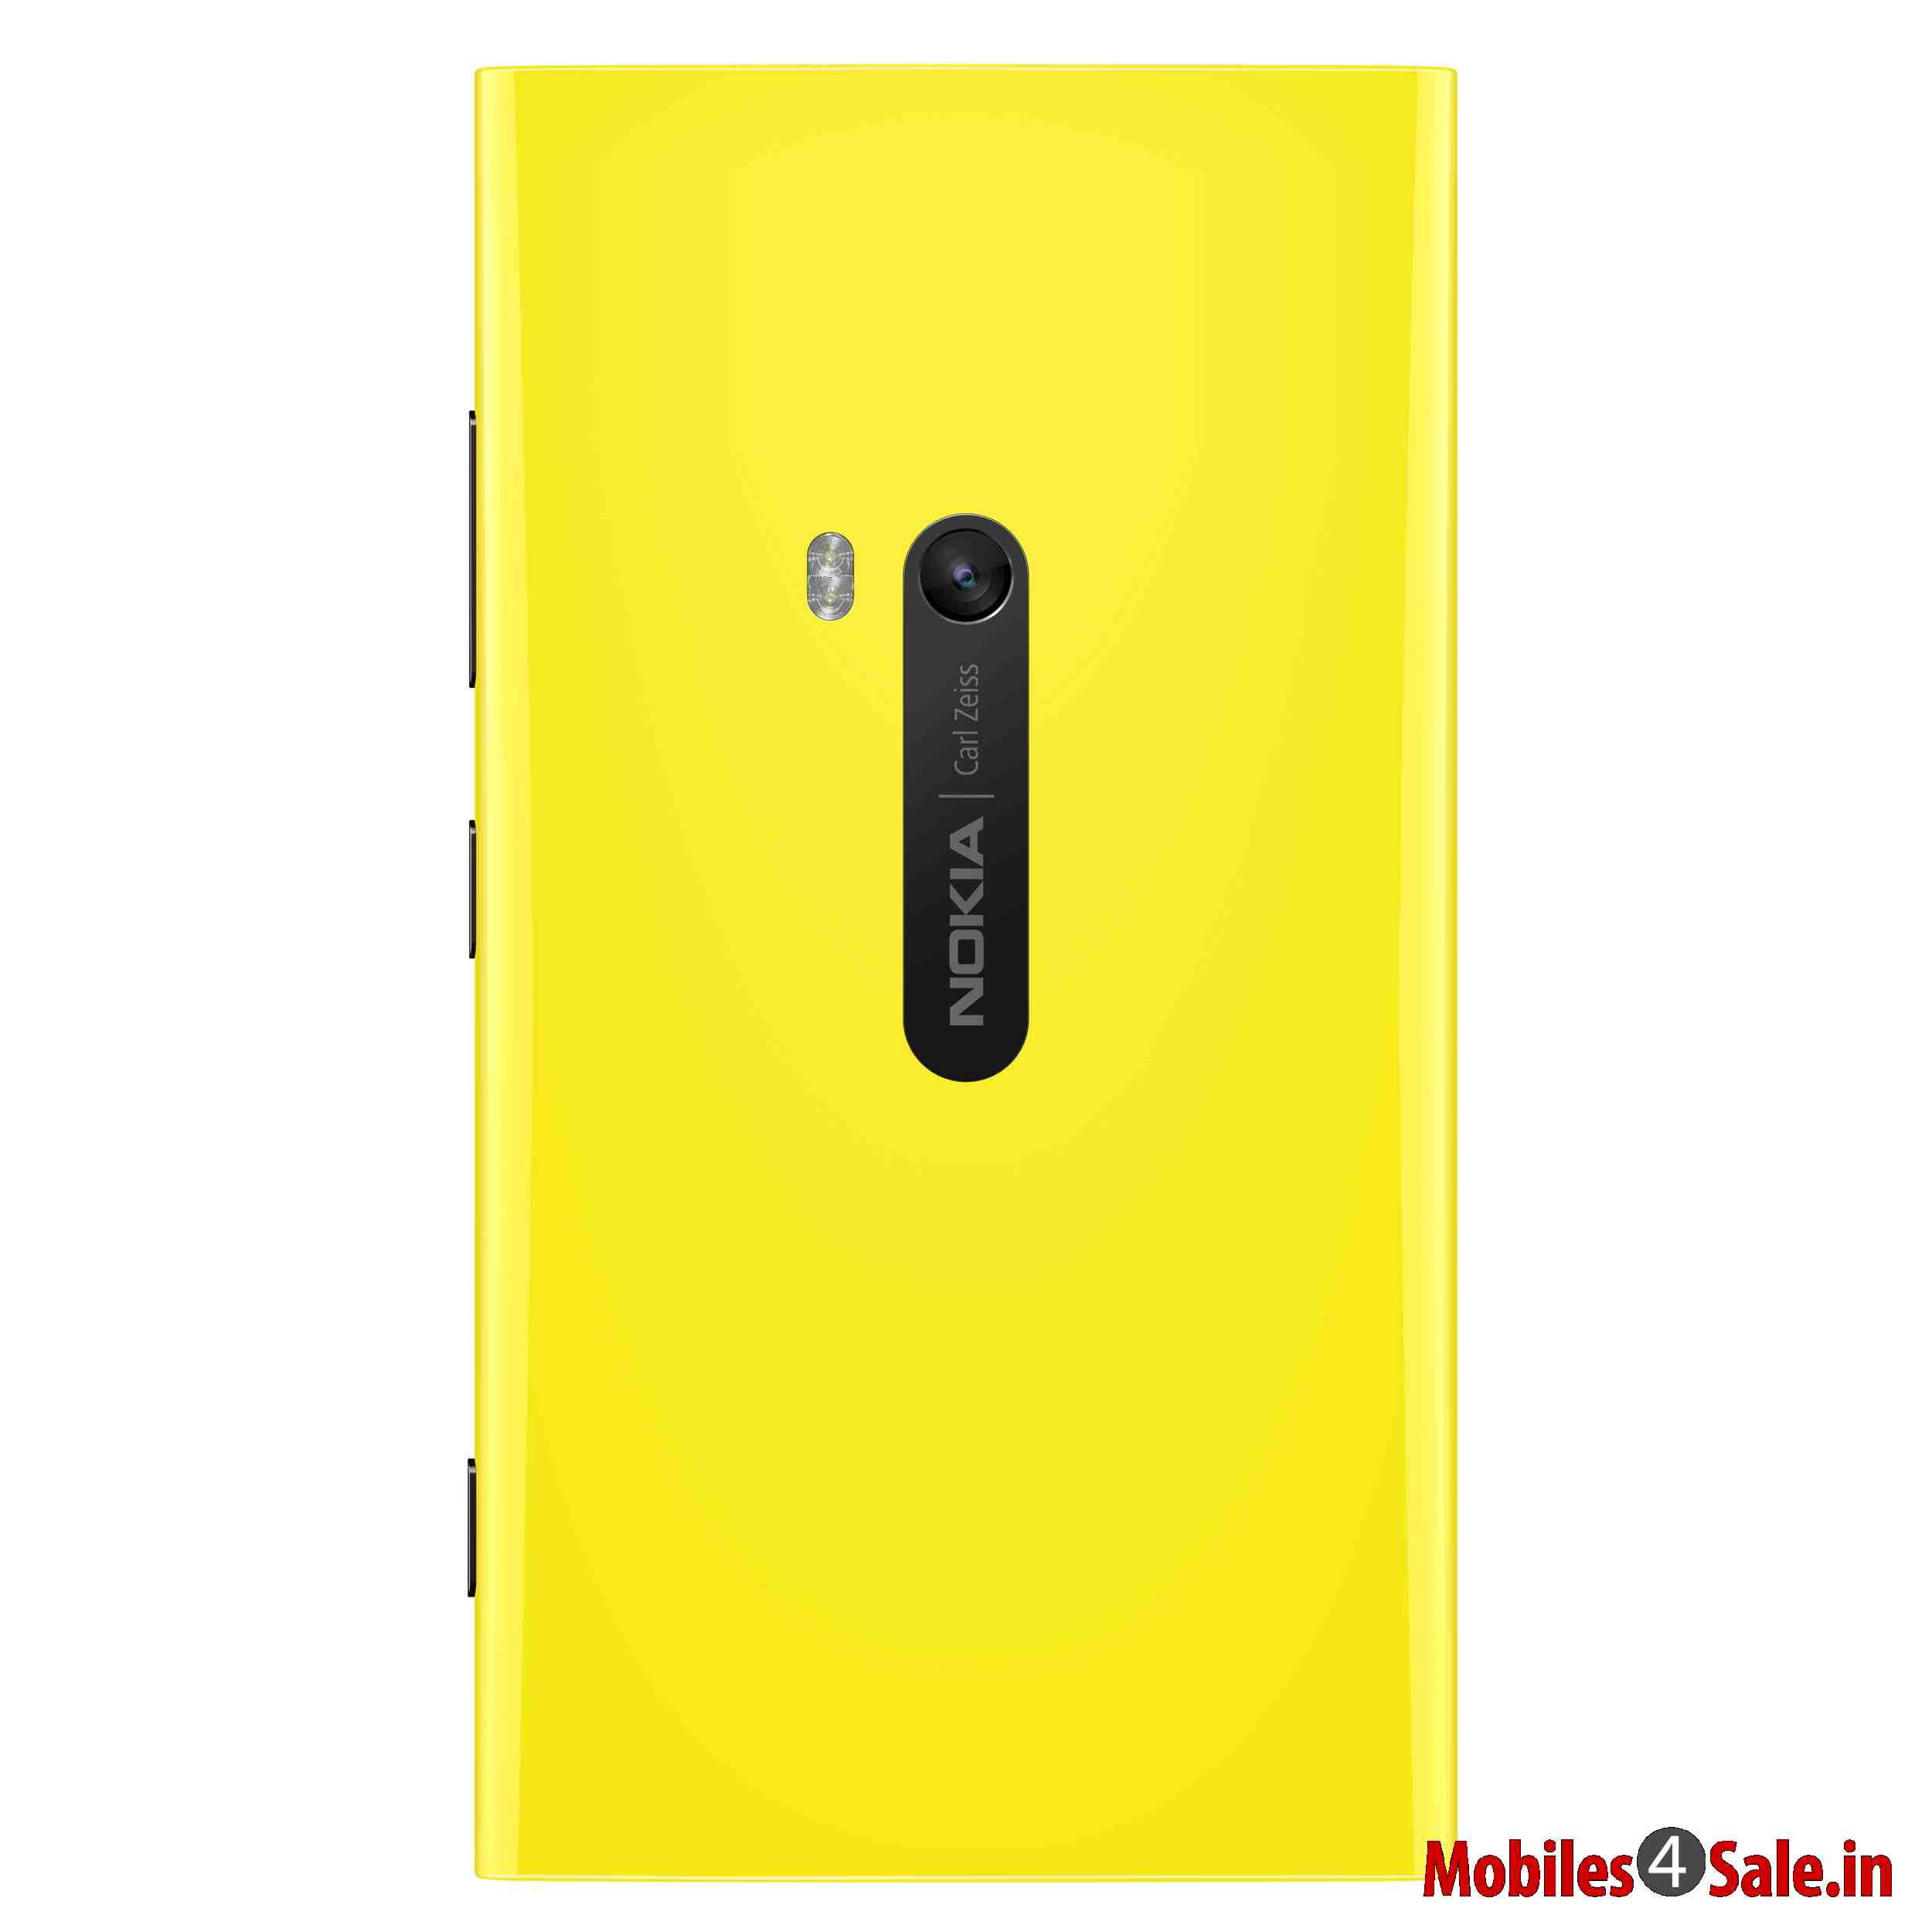 nokia lumia 920 picture showing the rear side of the